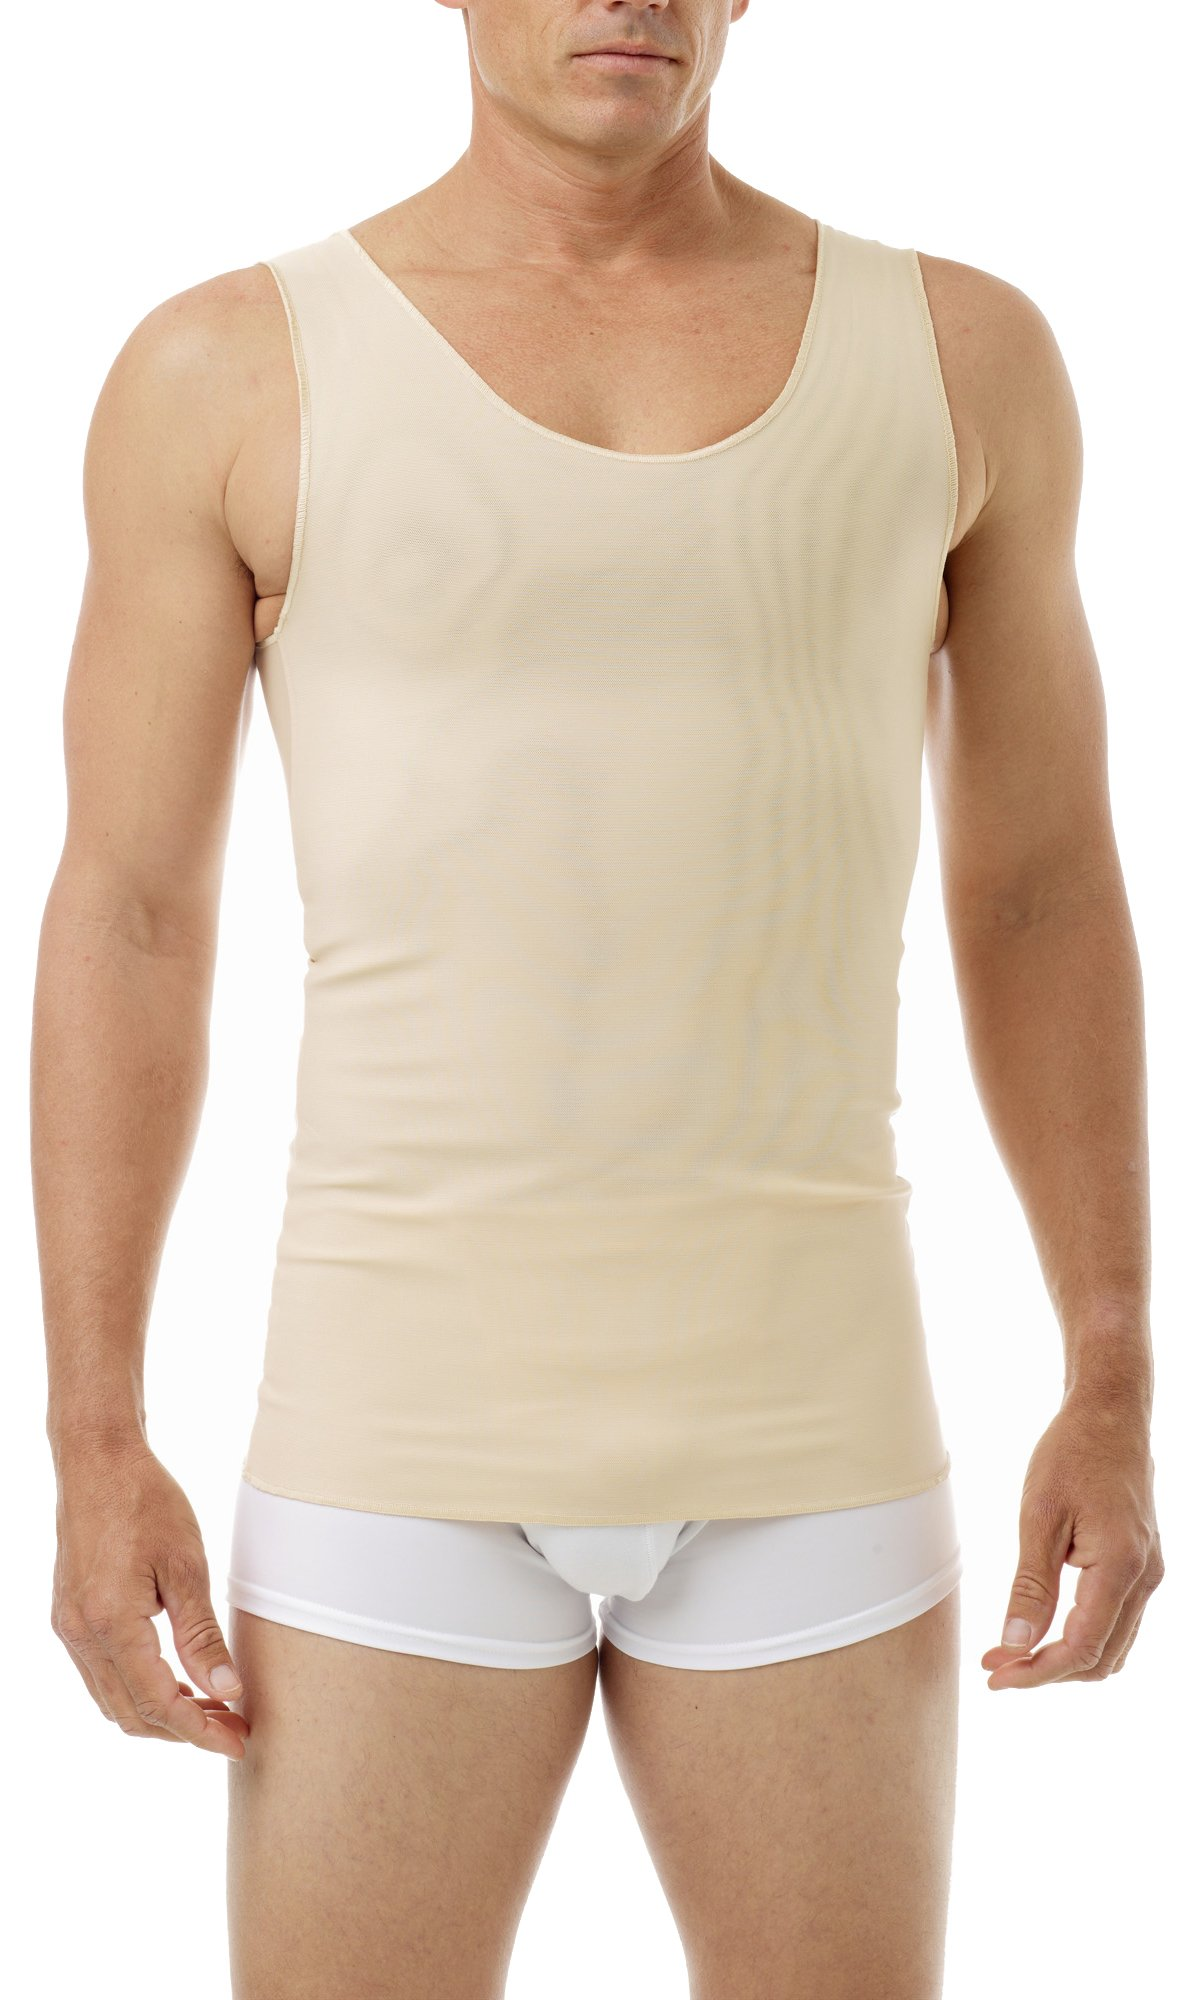 Underworks FTM Gynecomastia Ultimate Chest Binder Tank 997-3-Pack - Nude X-Small